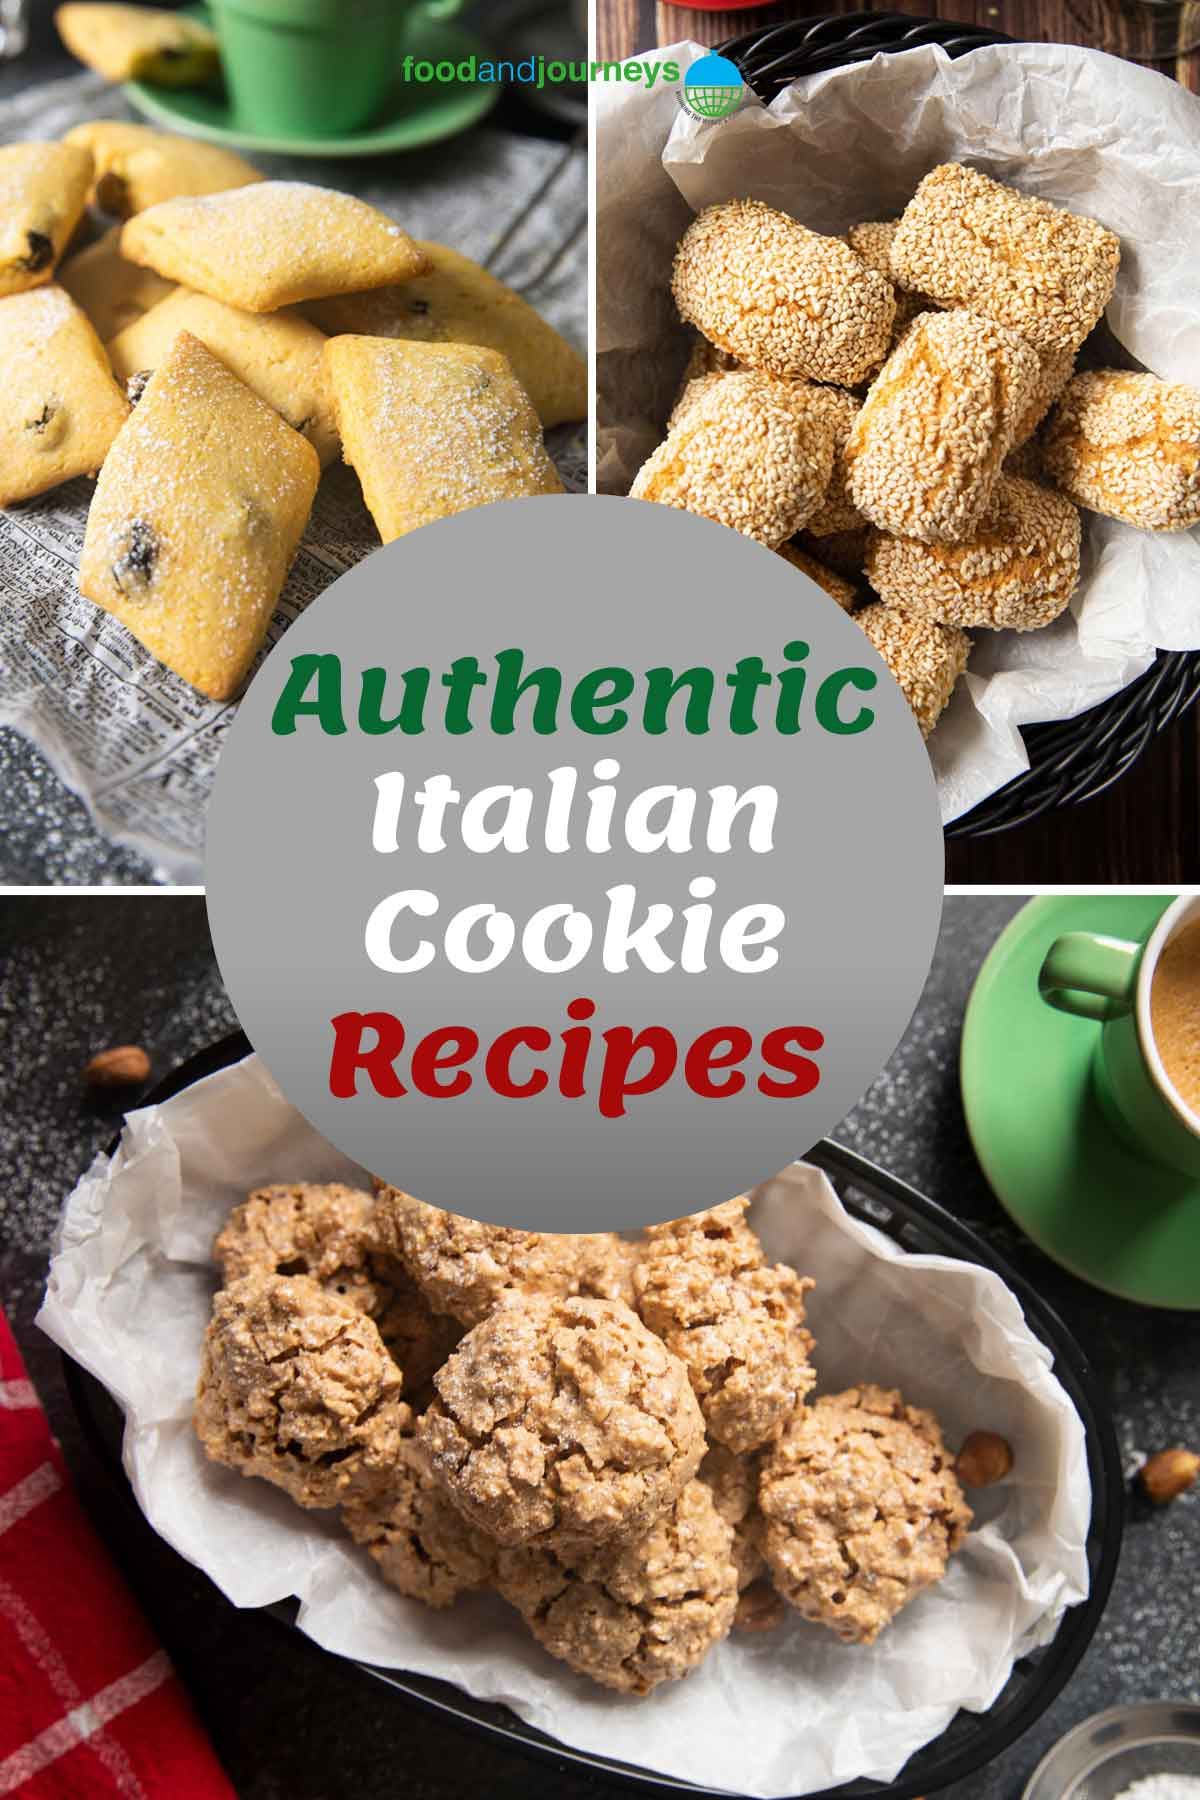 A collage of images showing authentic Italian cookies.